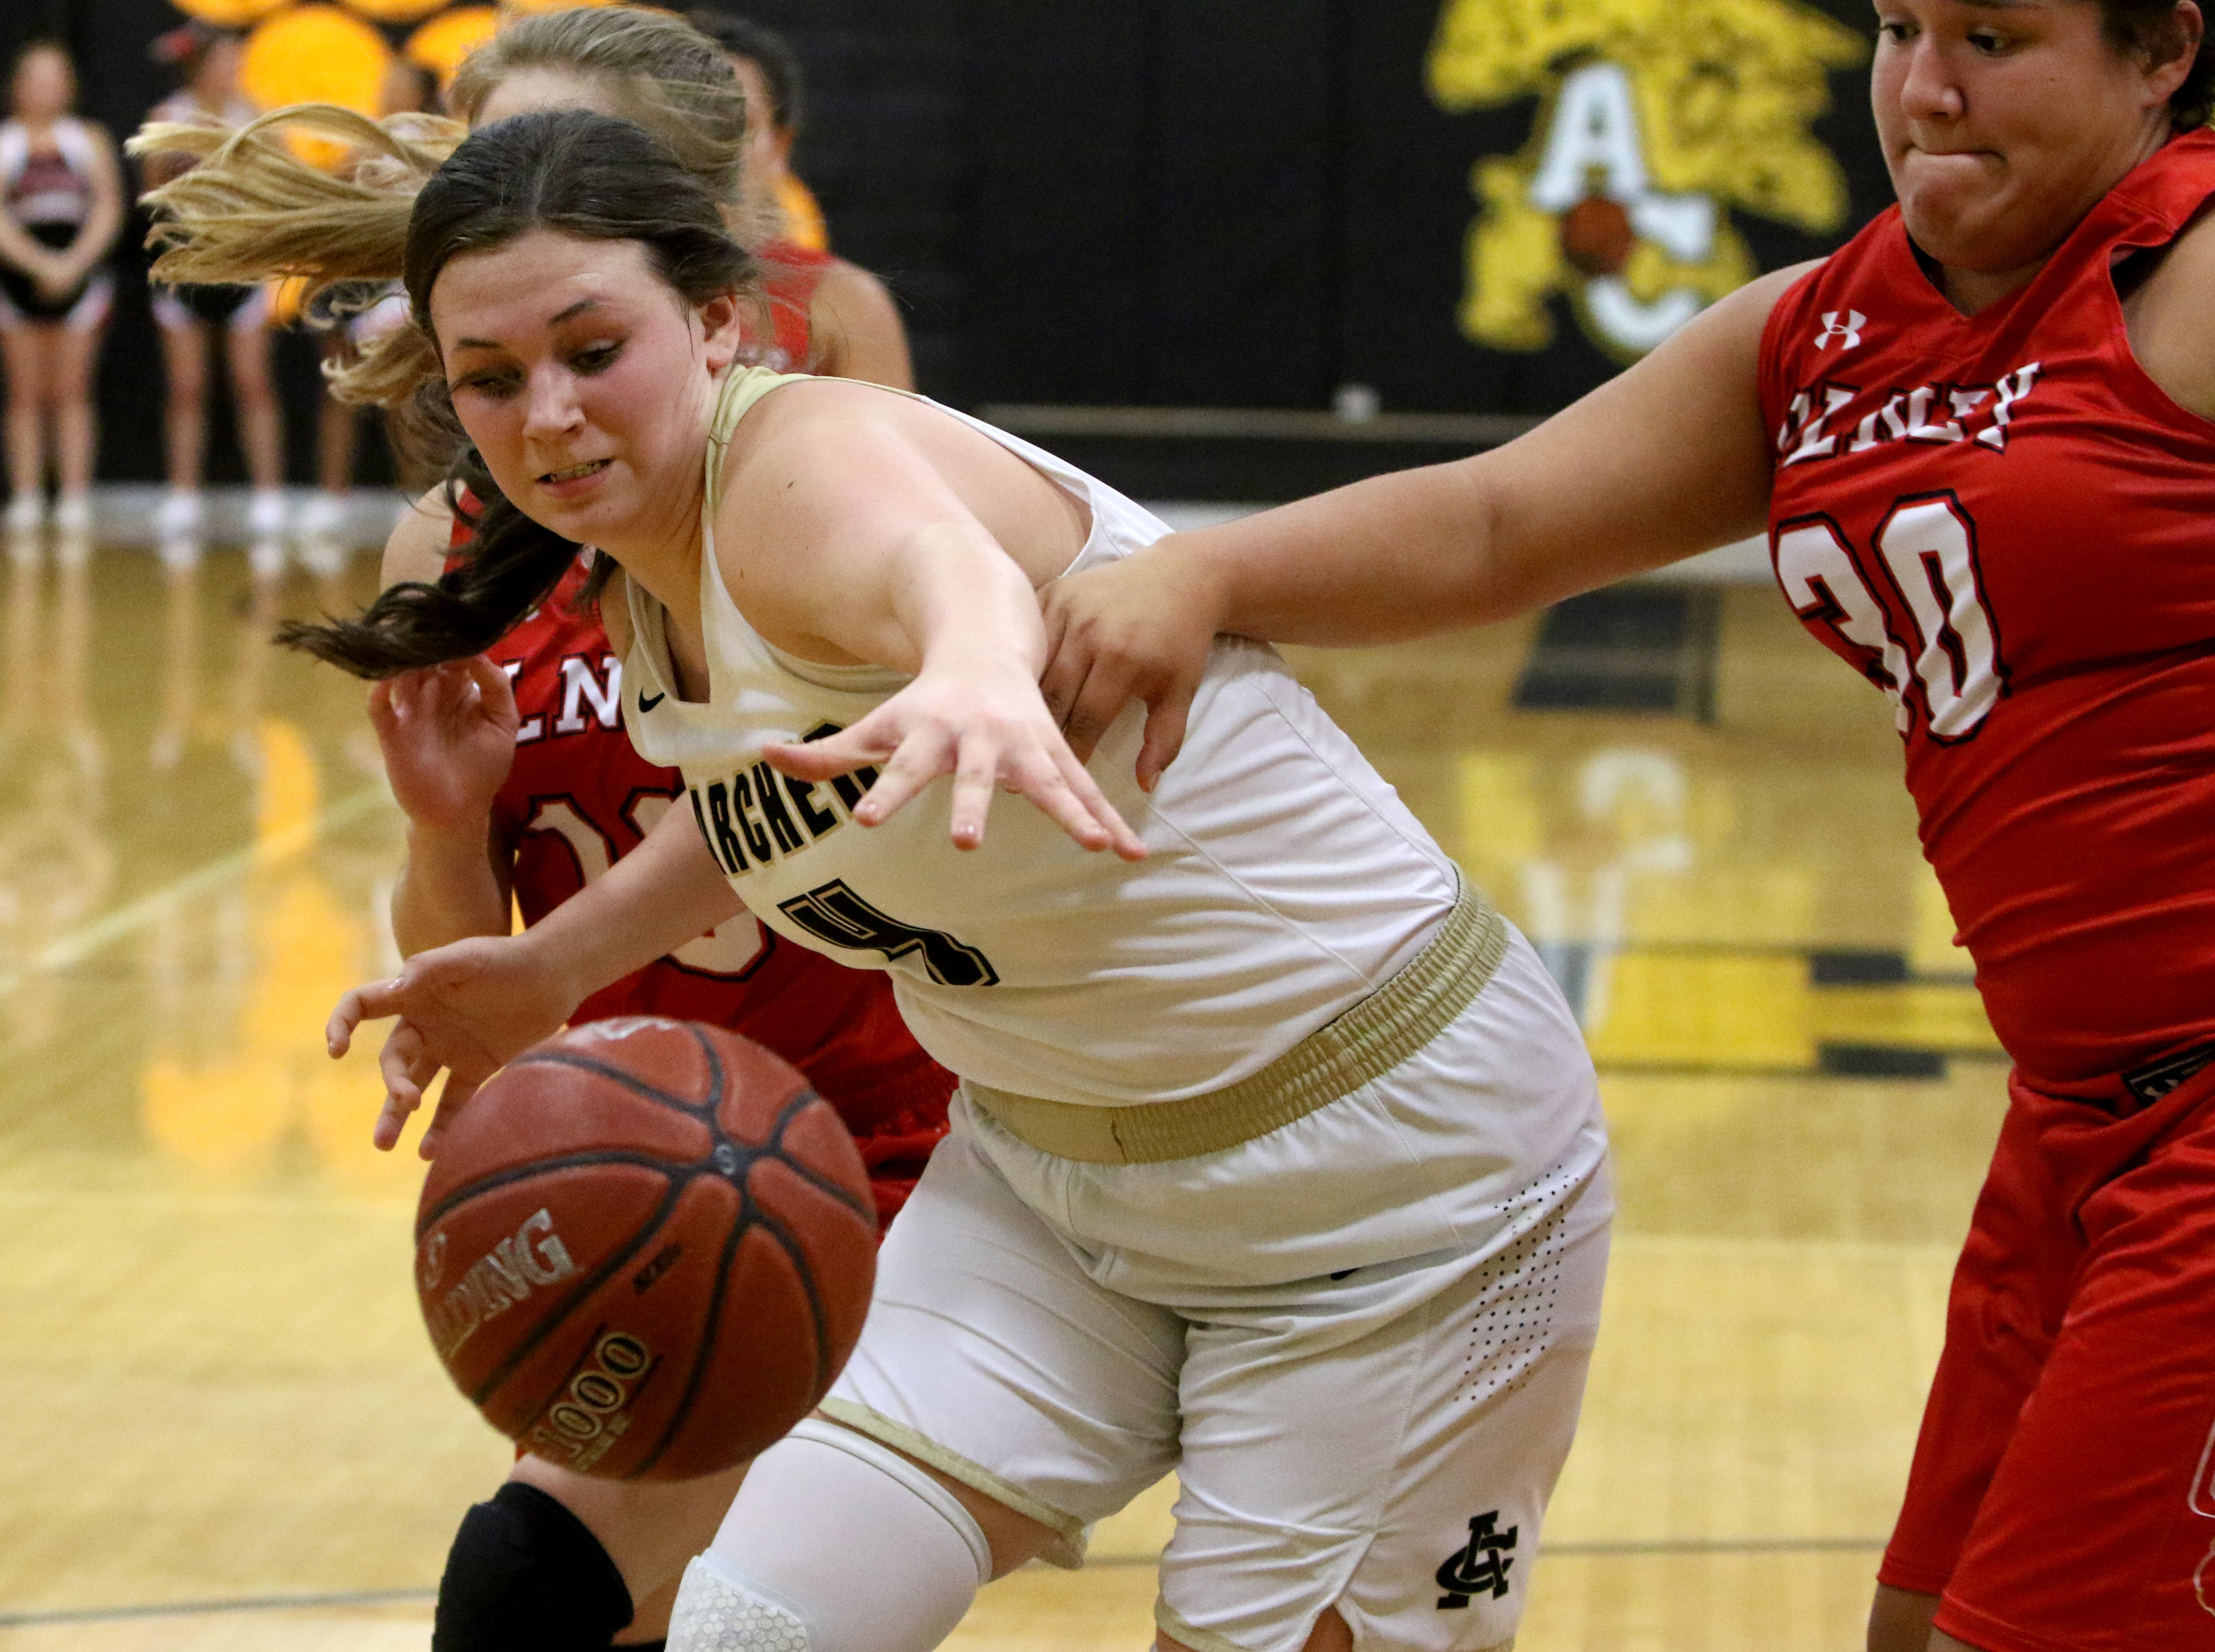 Archer City's Shaylee Watson reaches for the ball as it goes out of bounds in the game against Olney Tuesday, Dec. 18, 2018, in Archer City. The Lady Cubs defeated The Lady Cats 48-43.